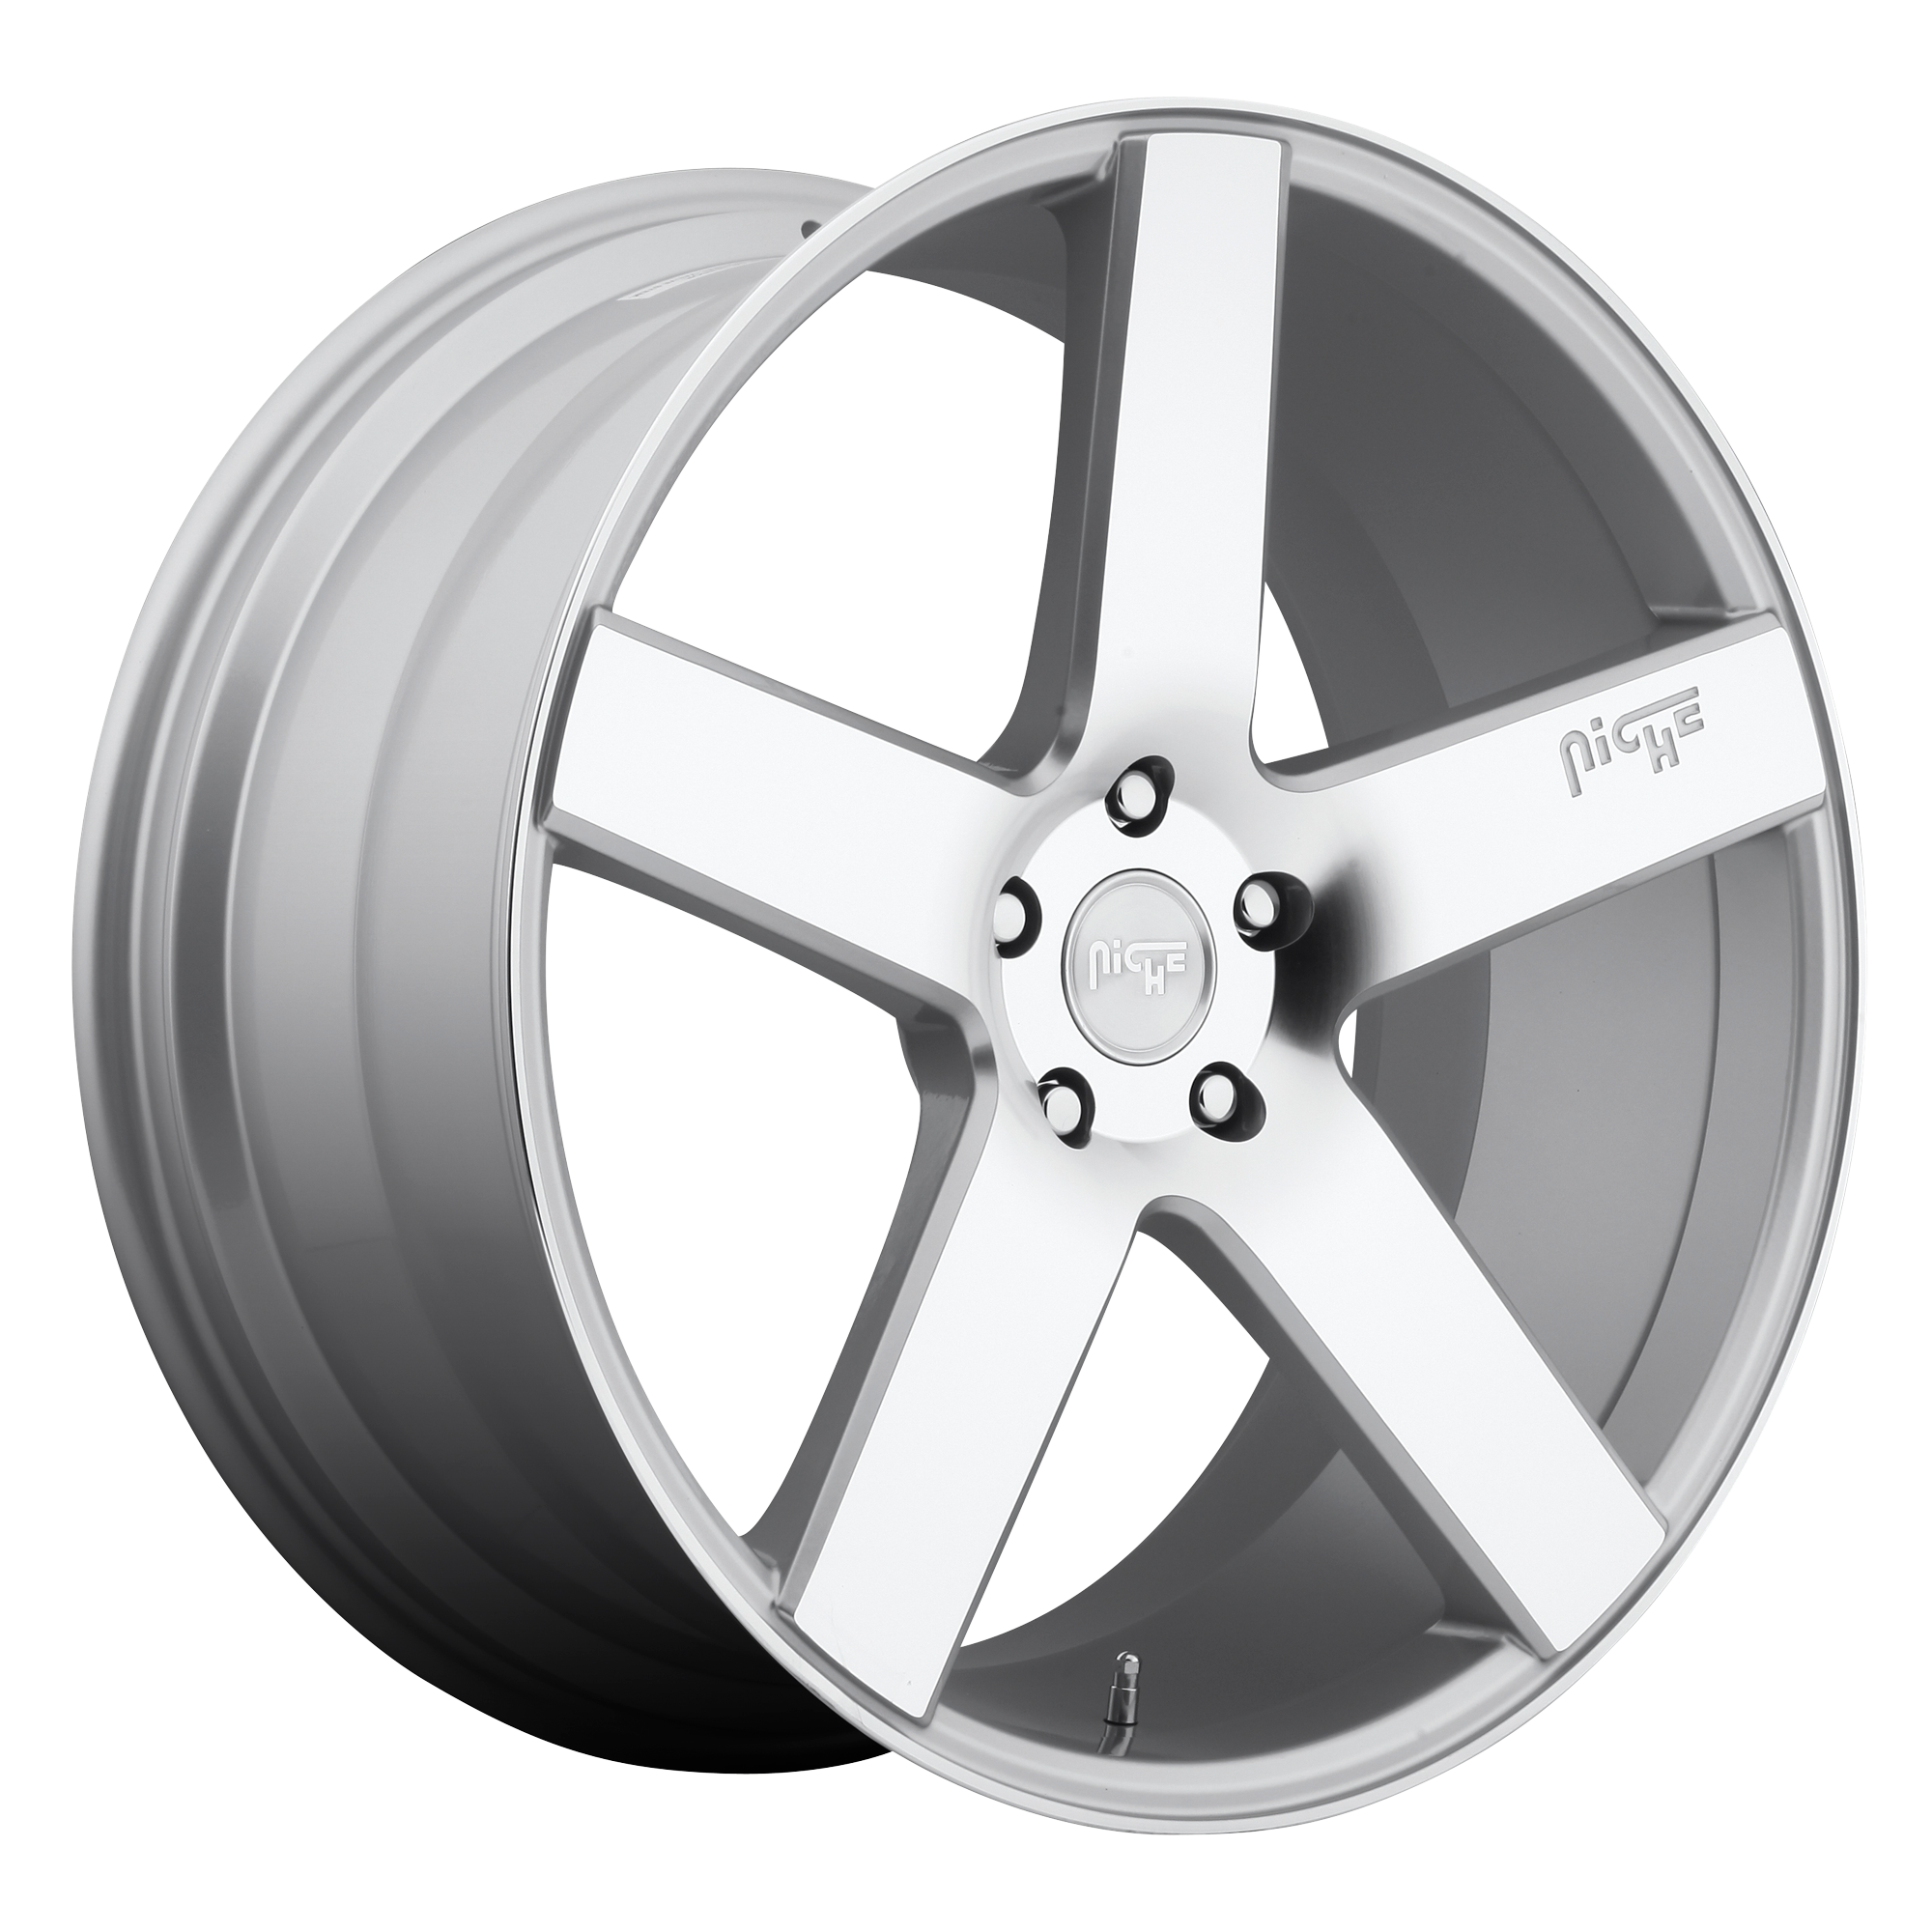 Milan 19x8.5 Gloss Silver Machined 5x114.3 (5x4.5) Bolt Pattern 35mm Offset